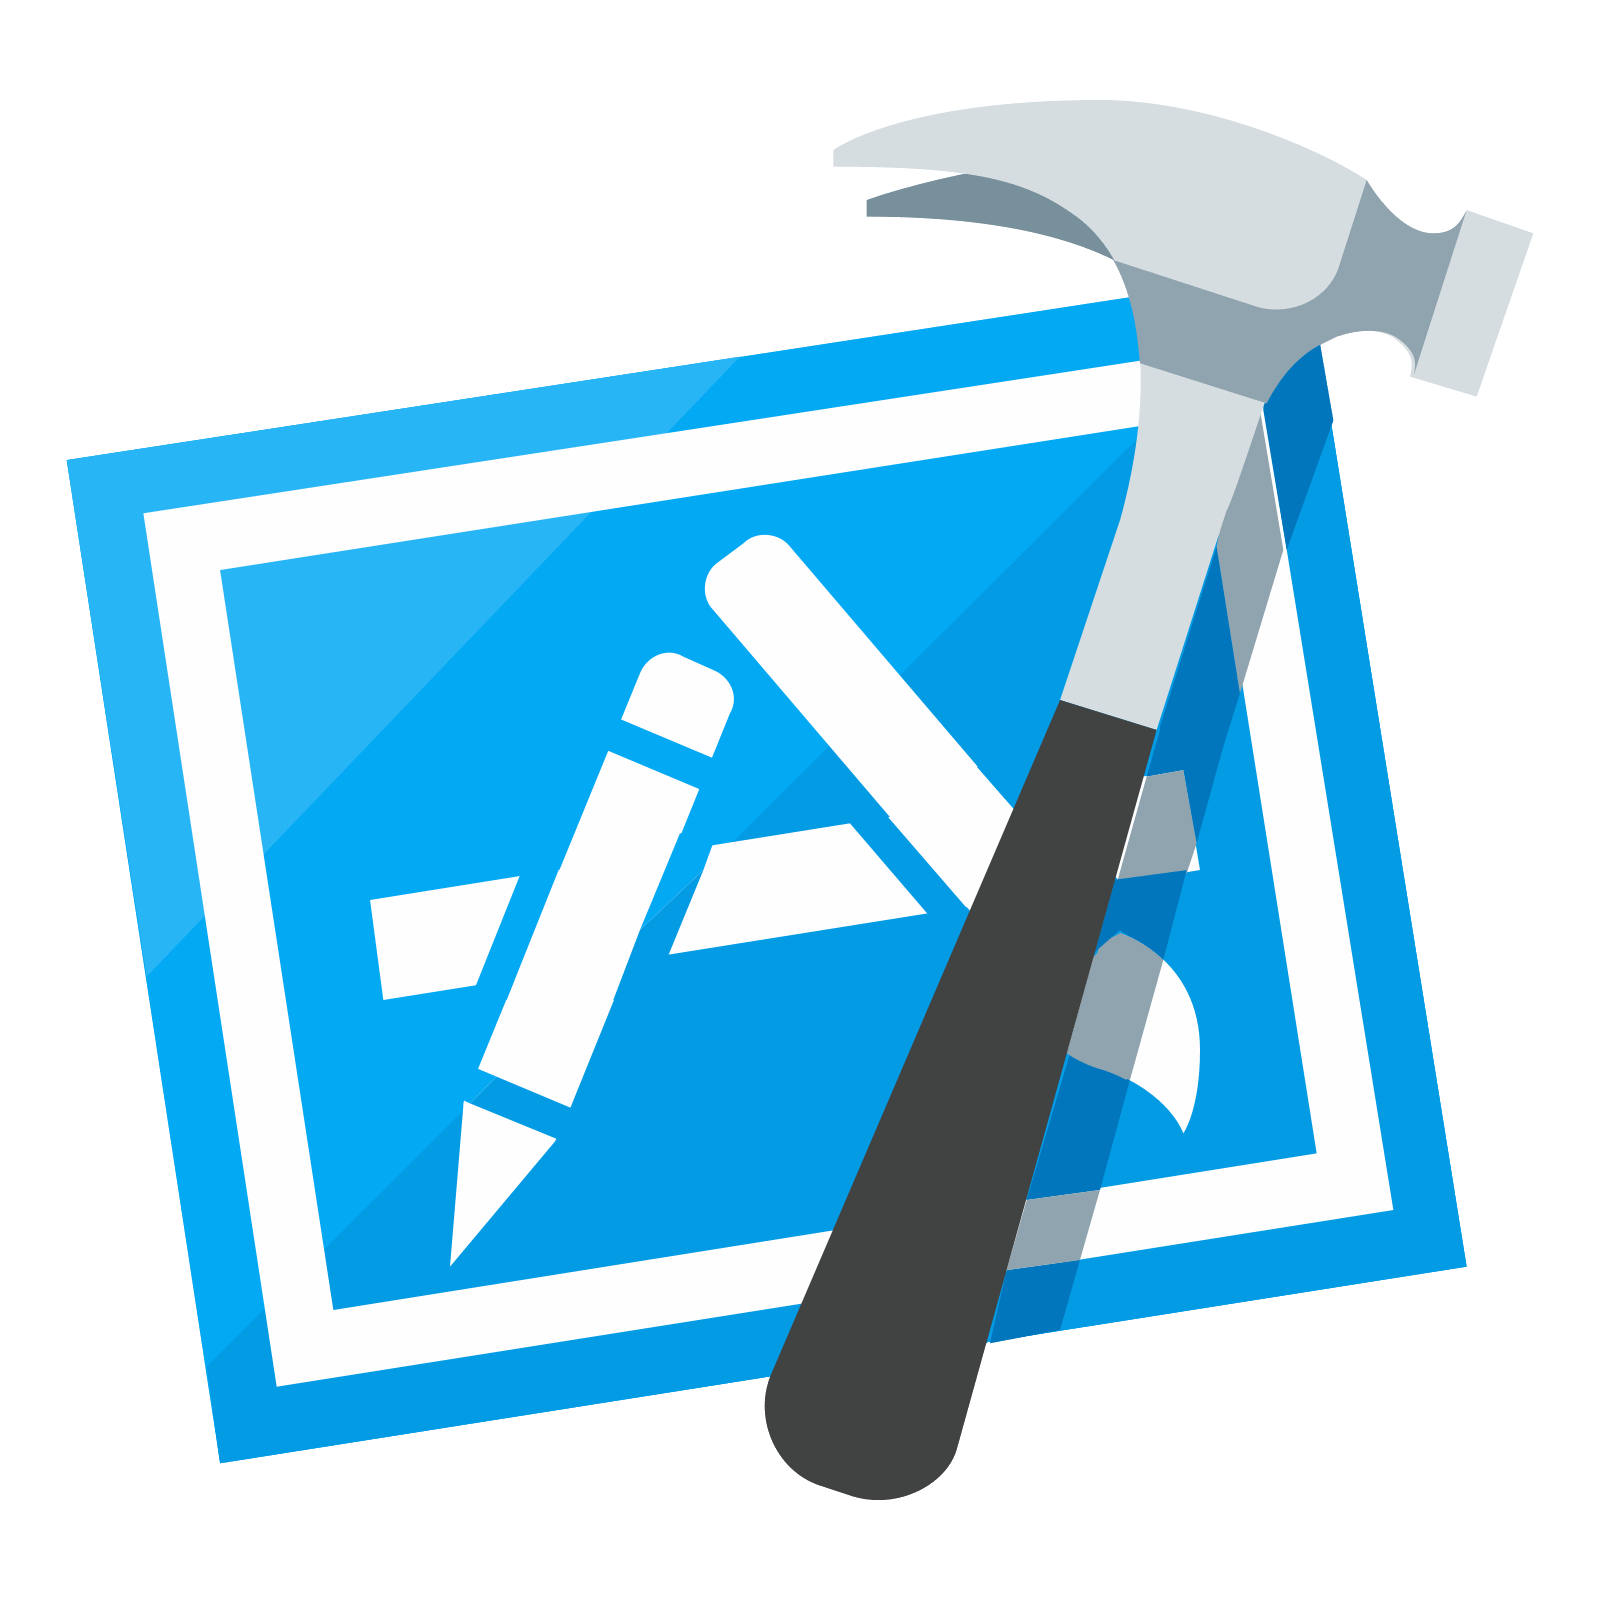 Free download png. Xcode icon and vector